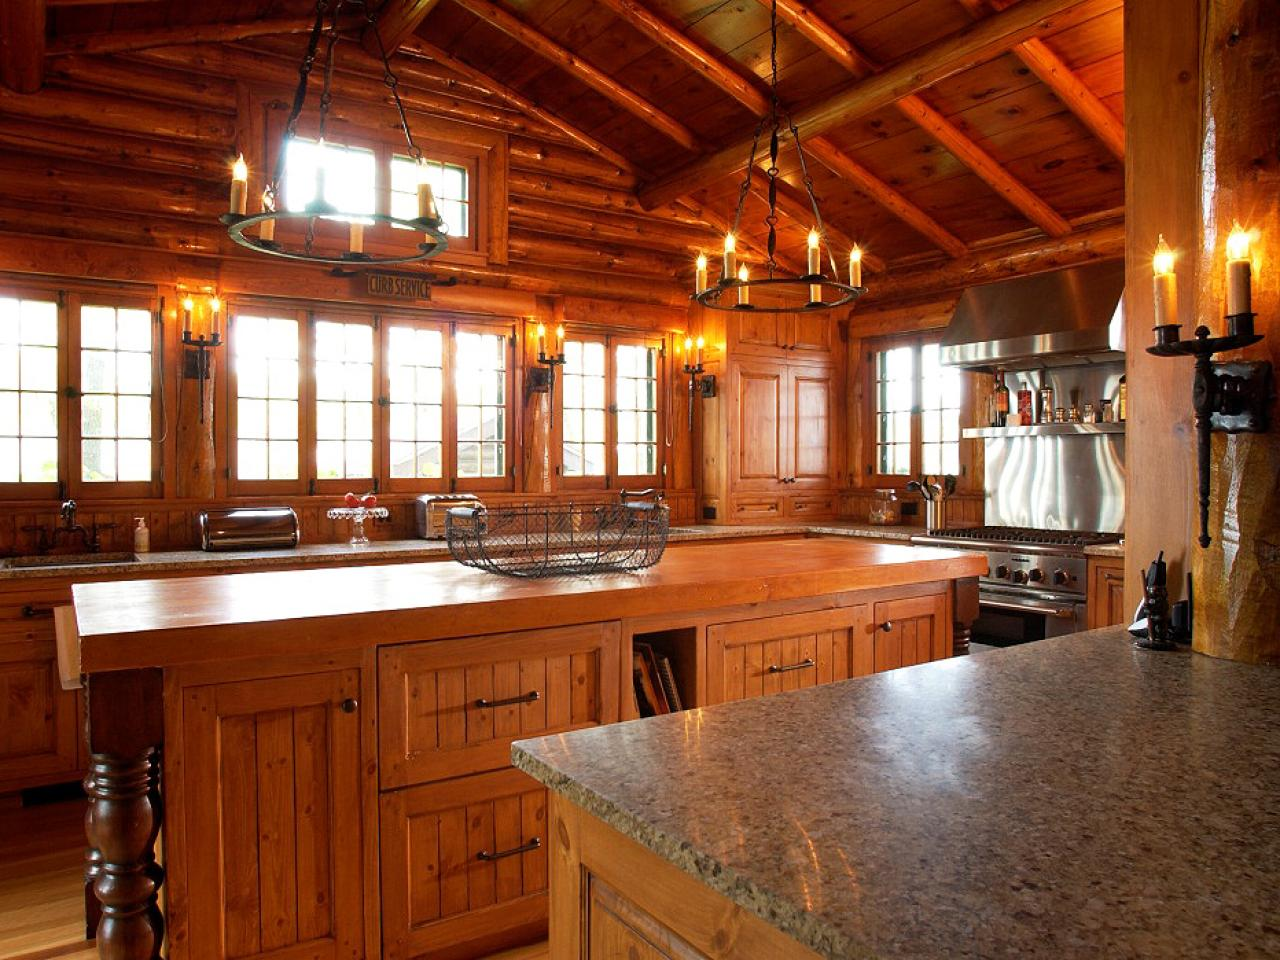 Cozy country kitchen designs kitchen designs choose kitchen layouts remodeling materials - Kitchen styles and designs ...